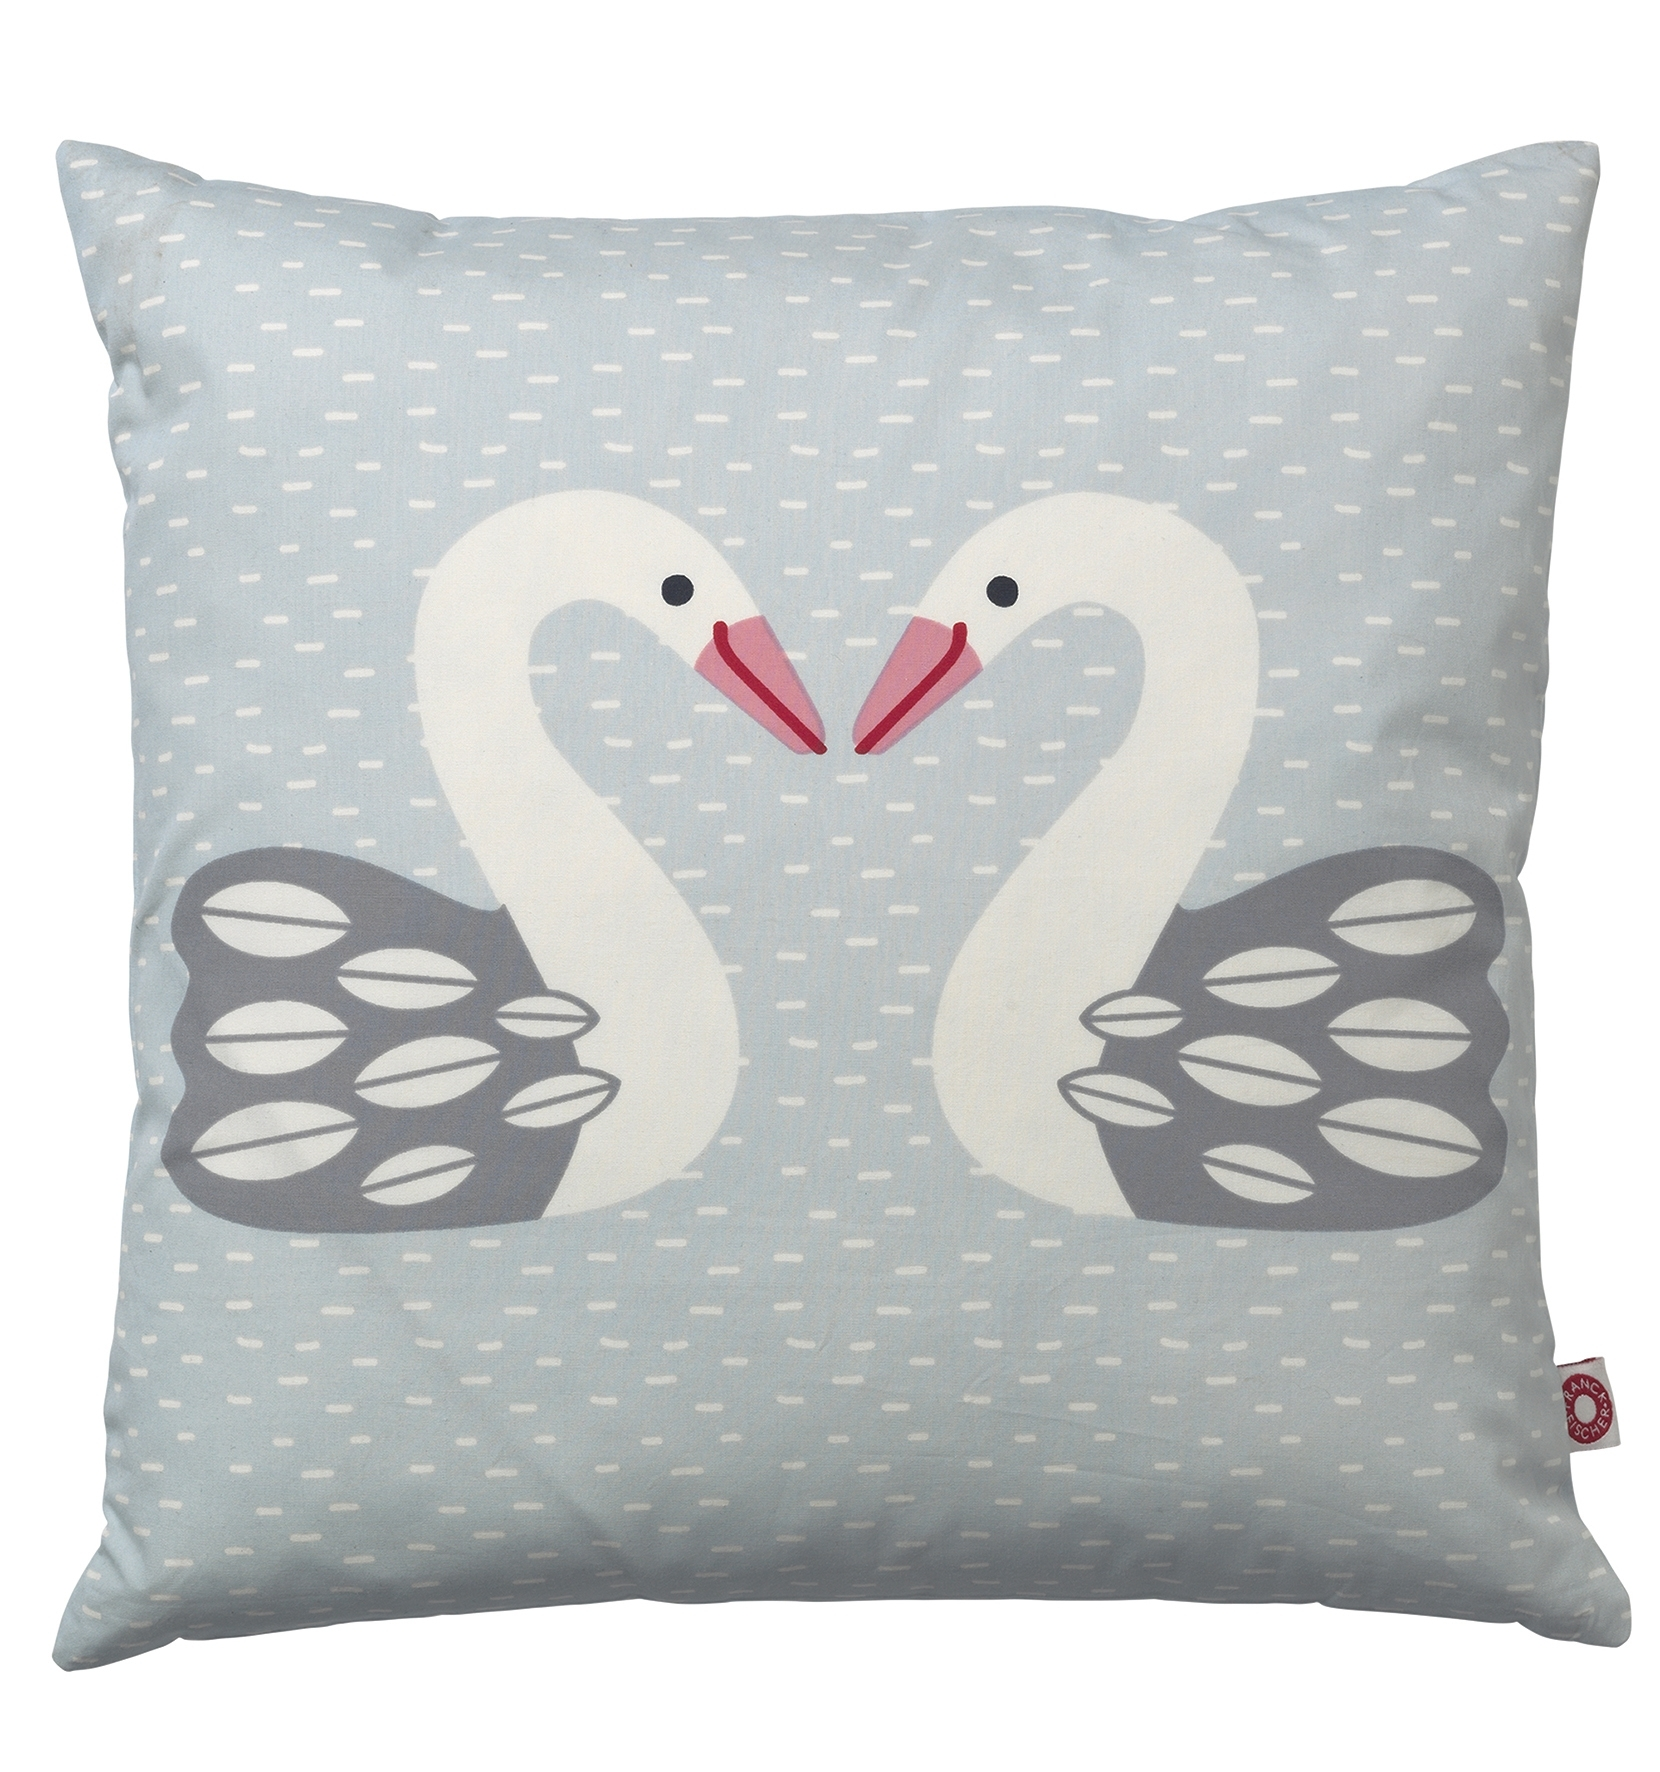 Almue coussin cygne clair